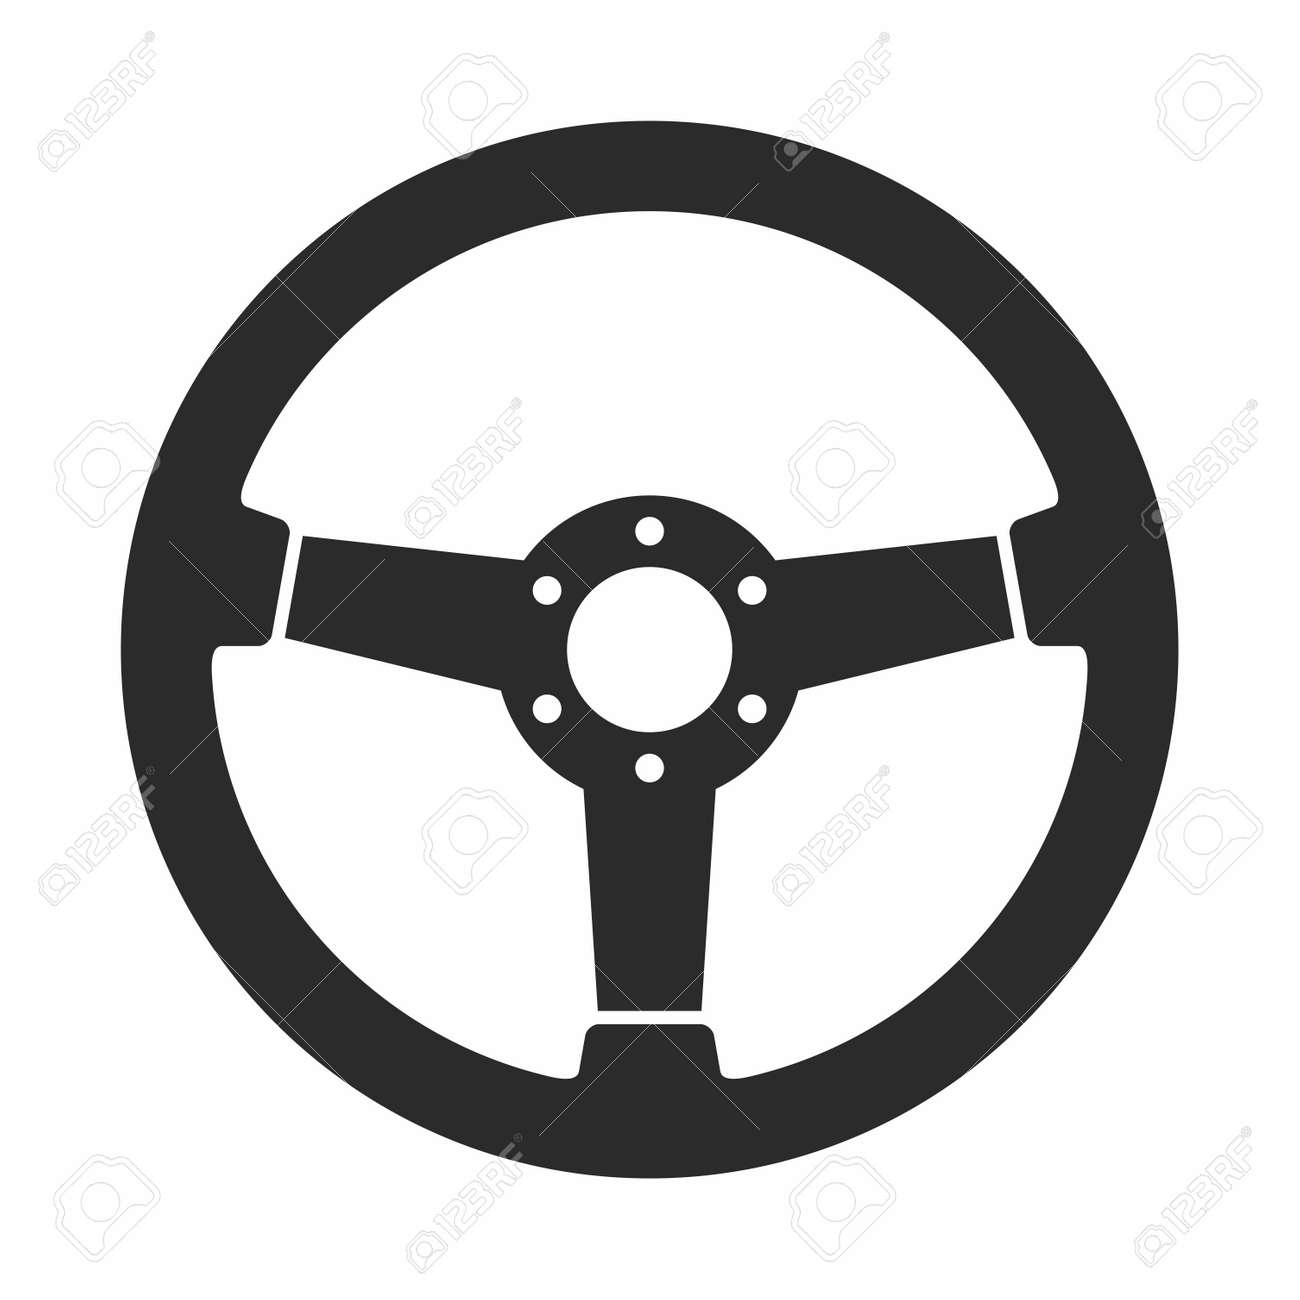 steering wheel icon royalty free cliparts vectors and stock illustration image 69150146 steering wheel icon